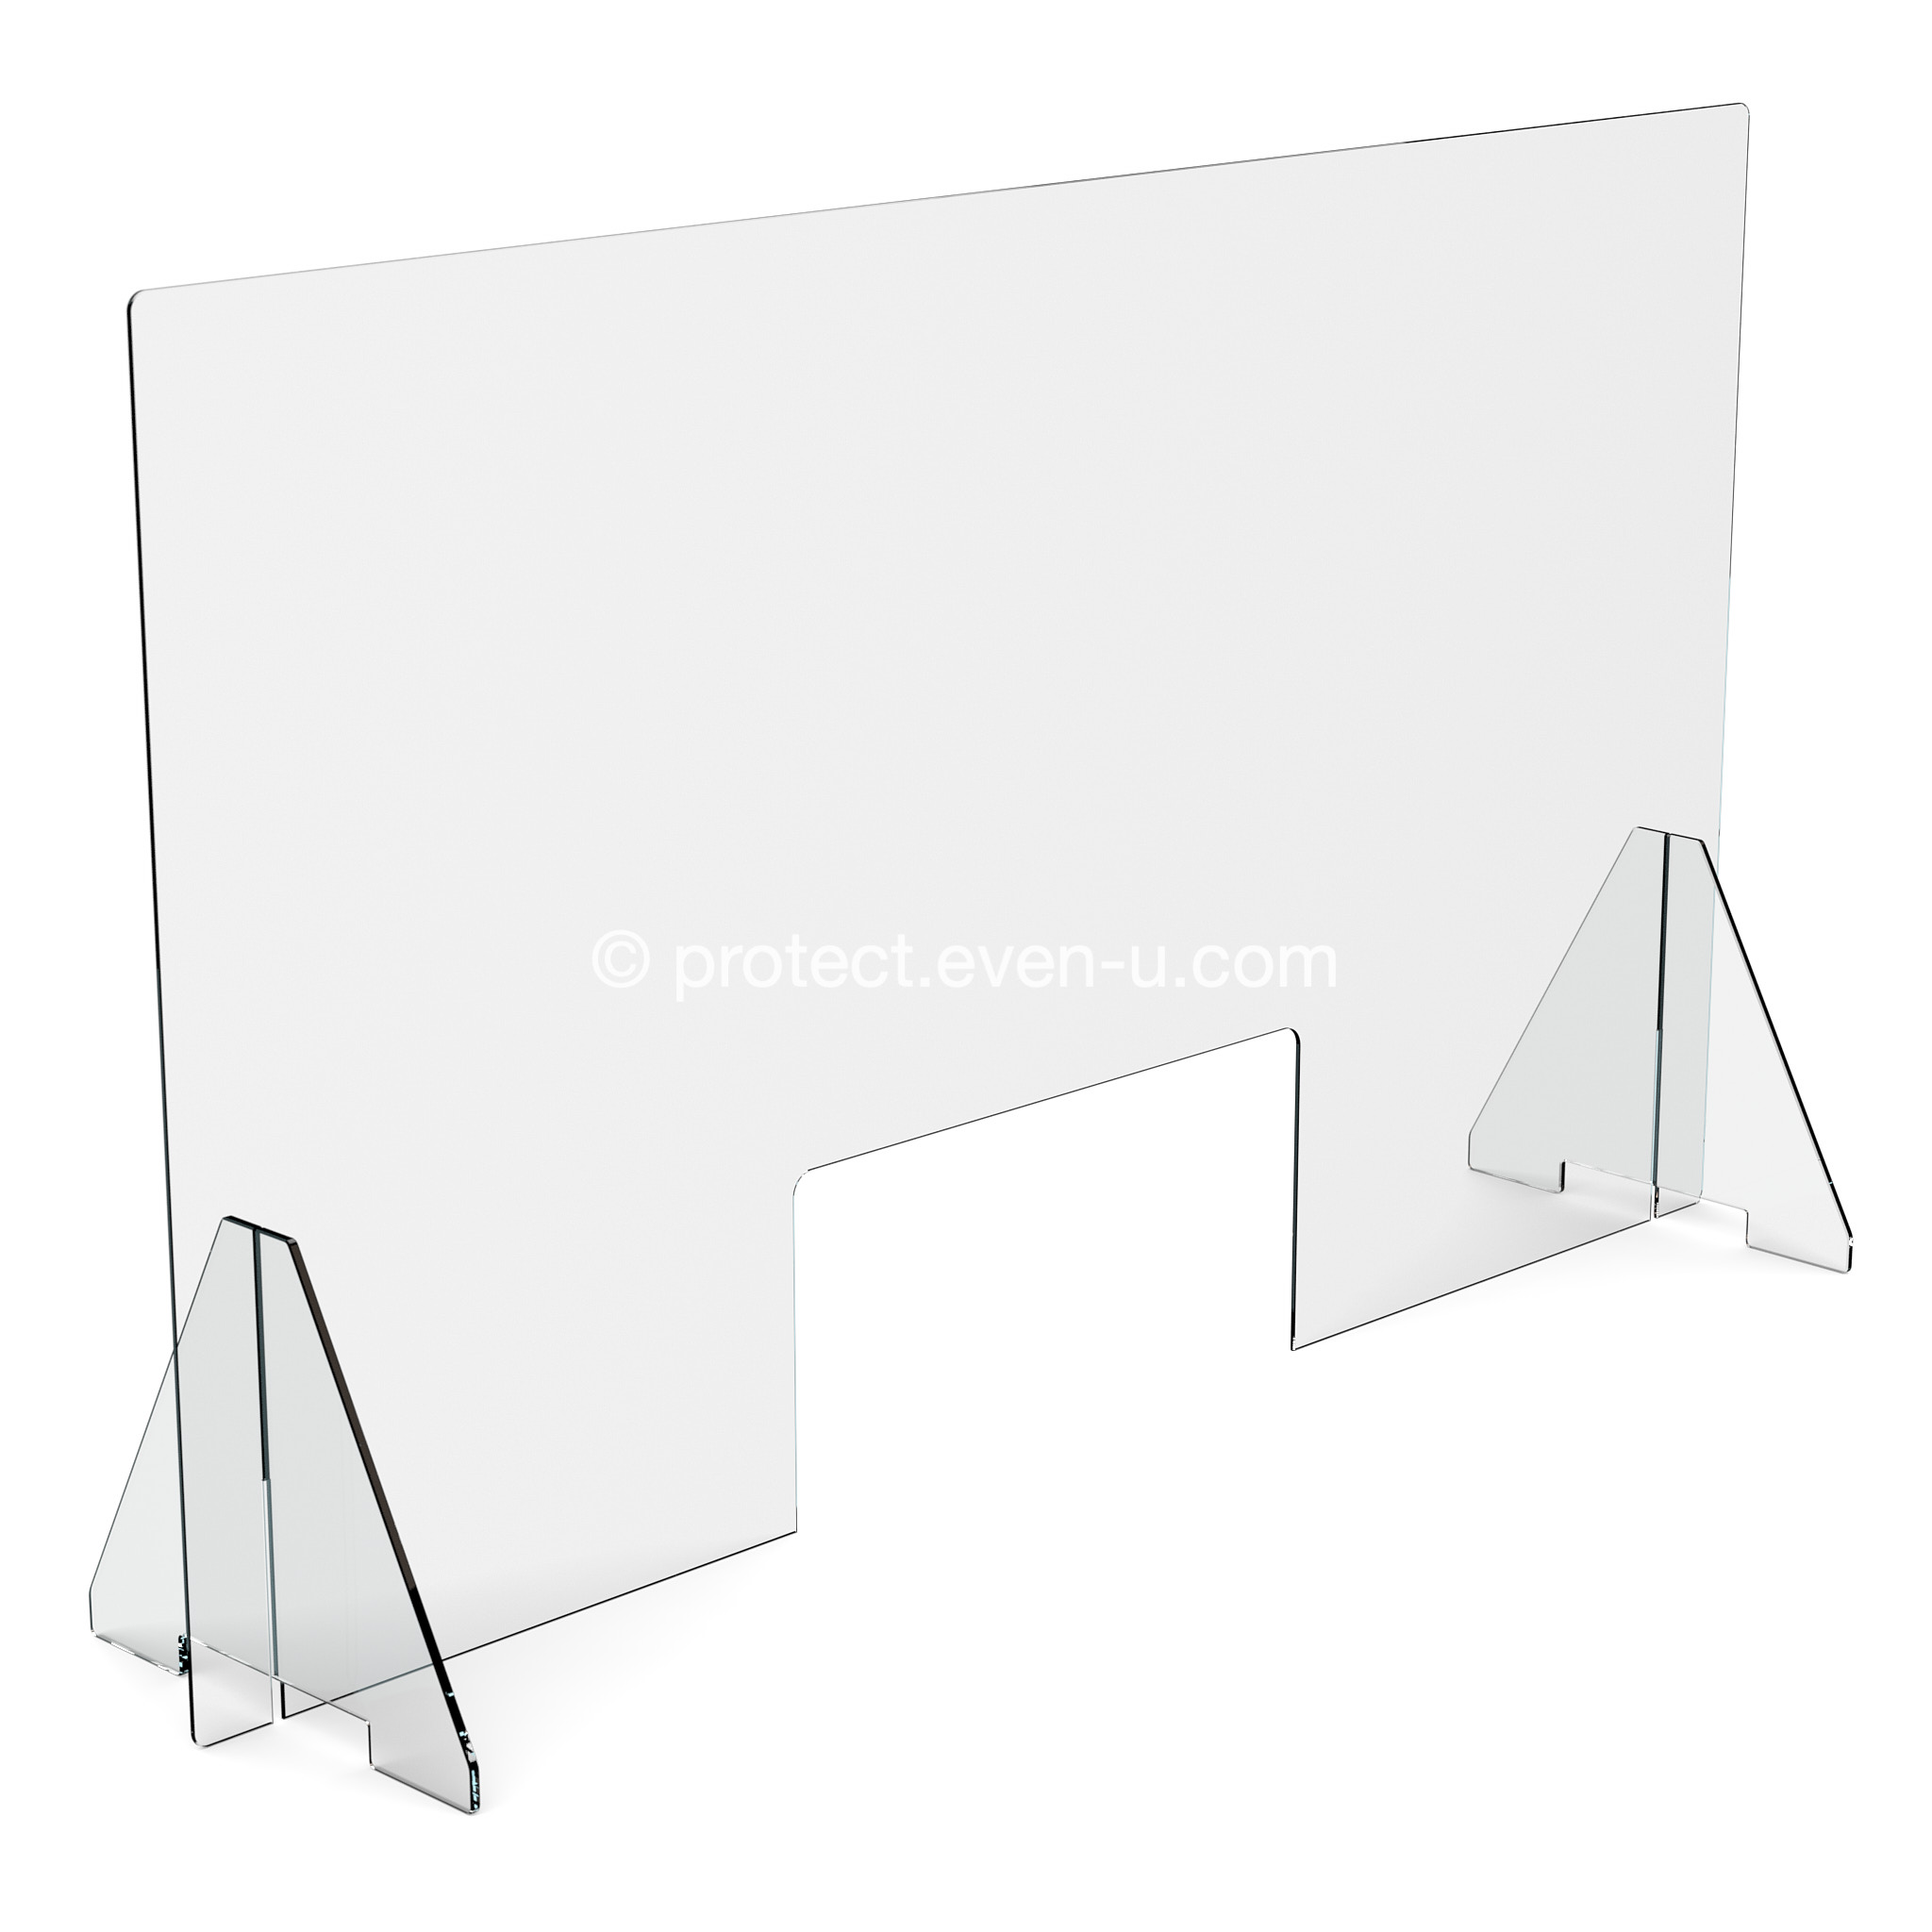 Shop Image of the 120cm Hatch Covid-19 Protection Screen